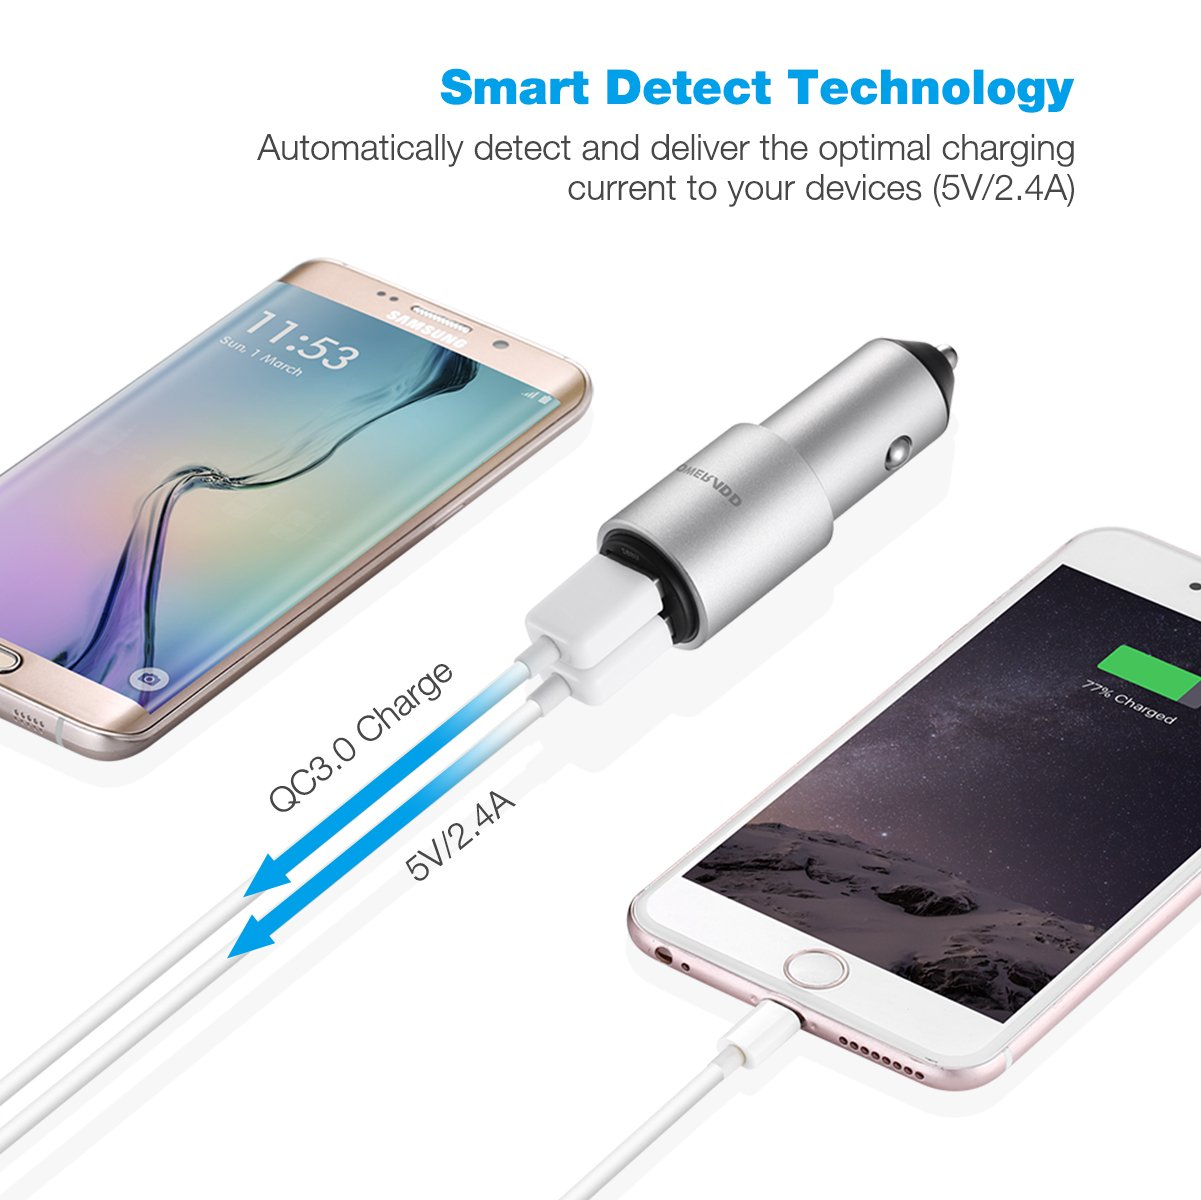 [Qualcomm Quick Charge 3.0] Poweradd Car Charger, 24W/5A 2-Port Smart USB Charger for iPhone X/8/8 Plus, iPad Mini 4, Samsung Galaxy Note and More - Silver